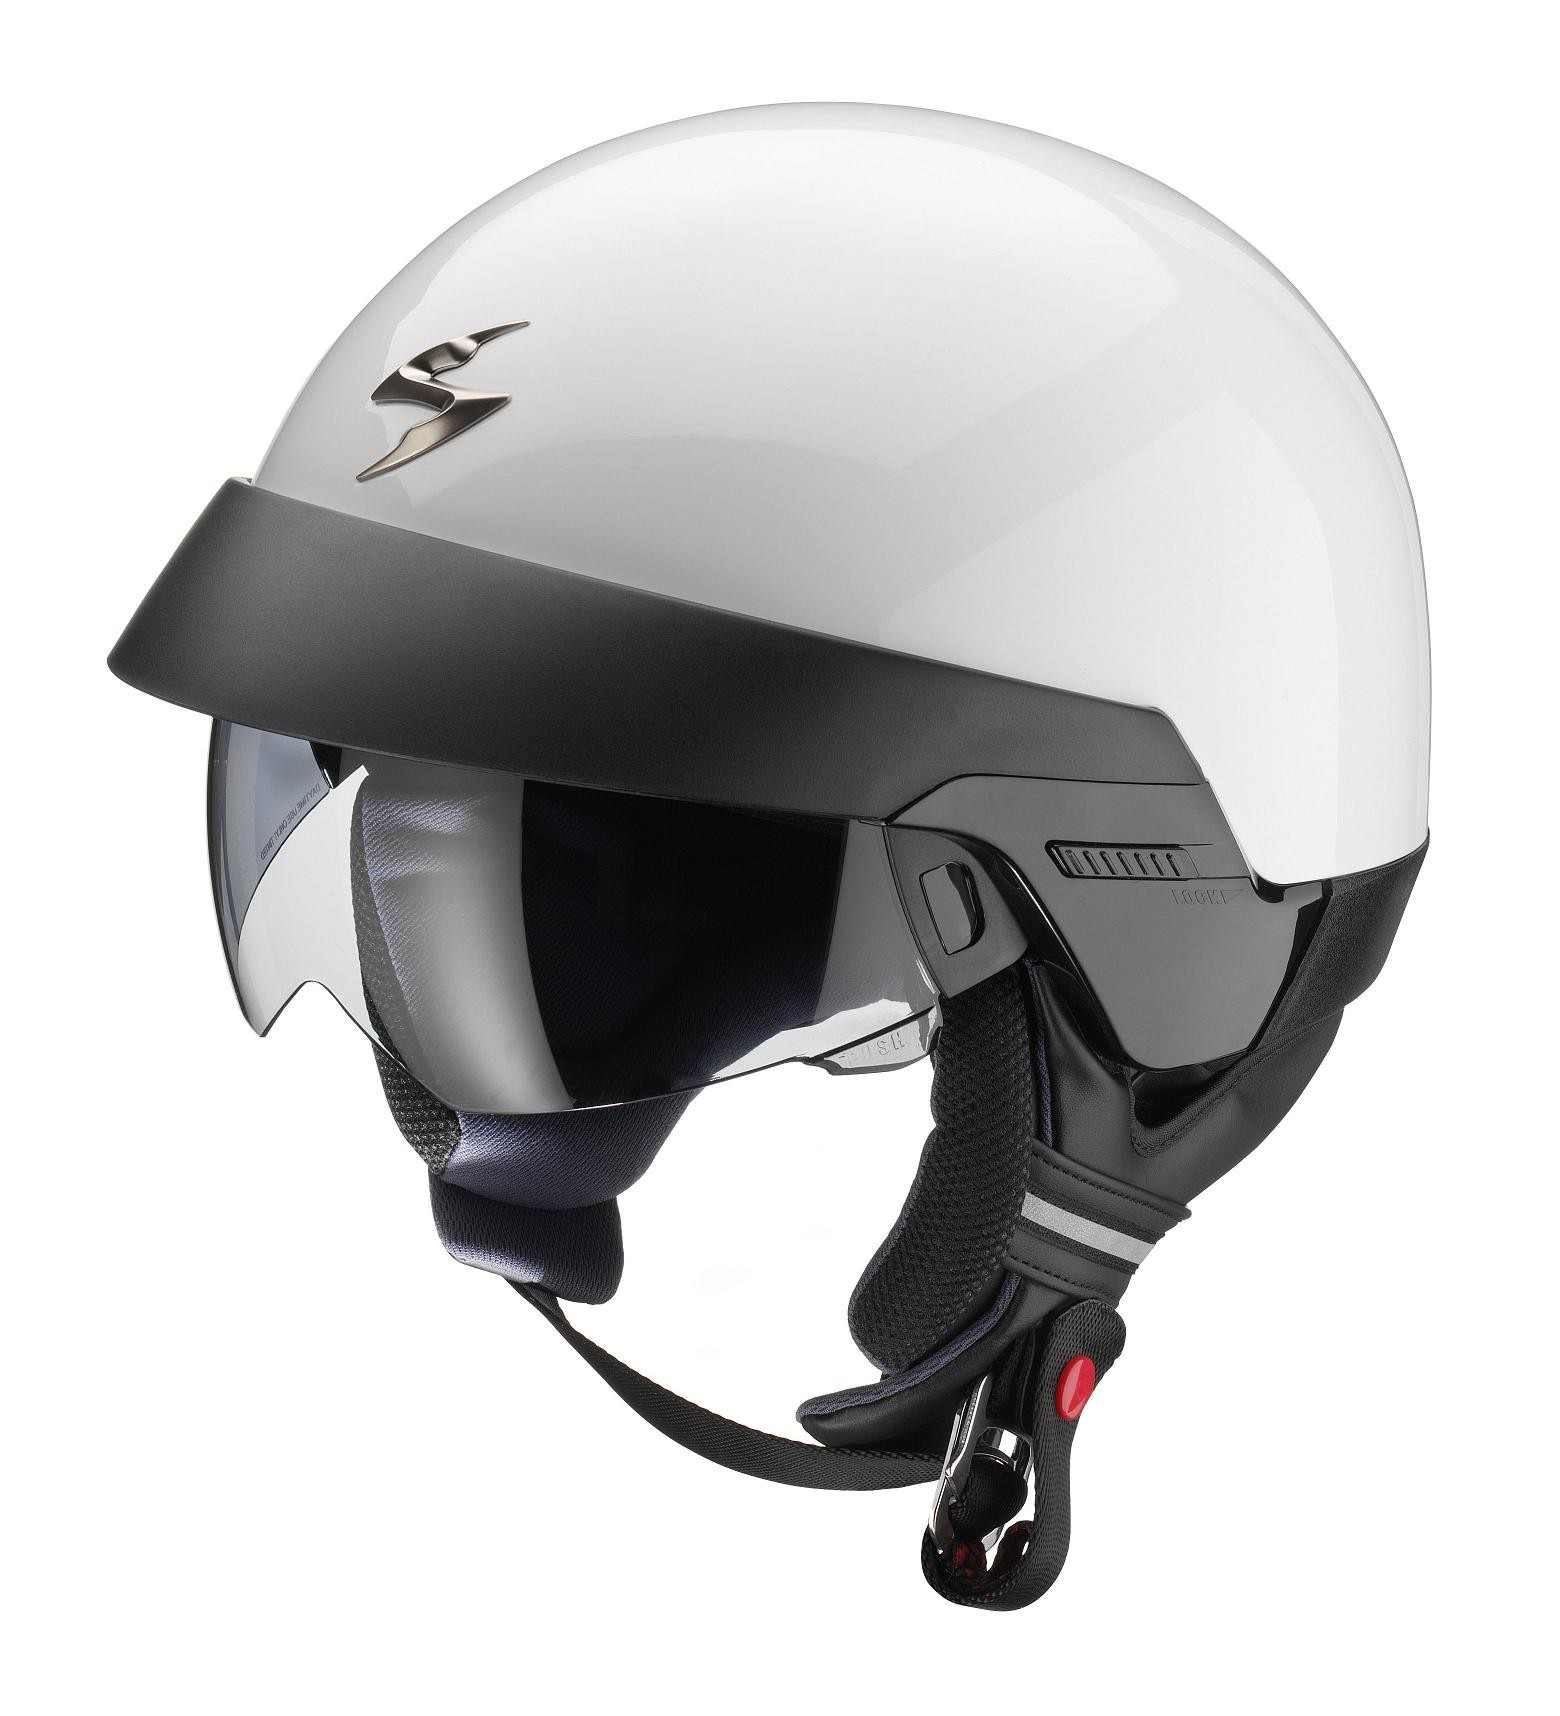 SCORPION EXO 100 - CASCO SCORPION EXO 100 SOLID BLANCO -